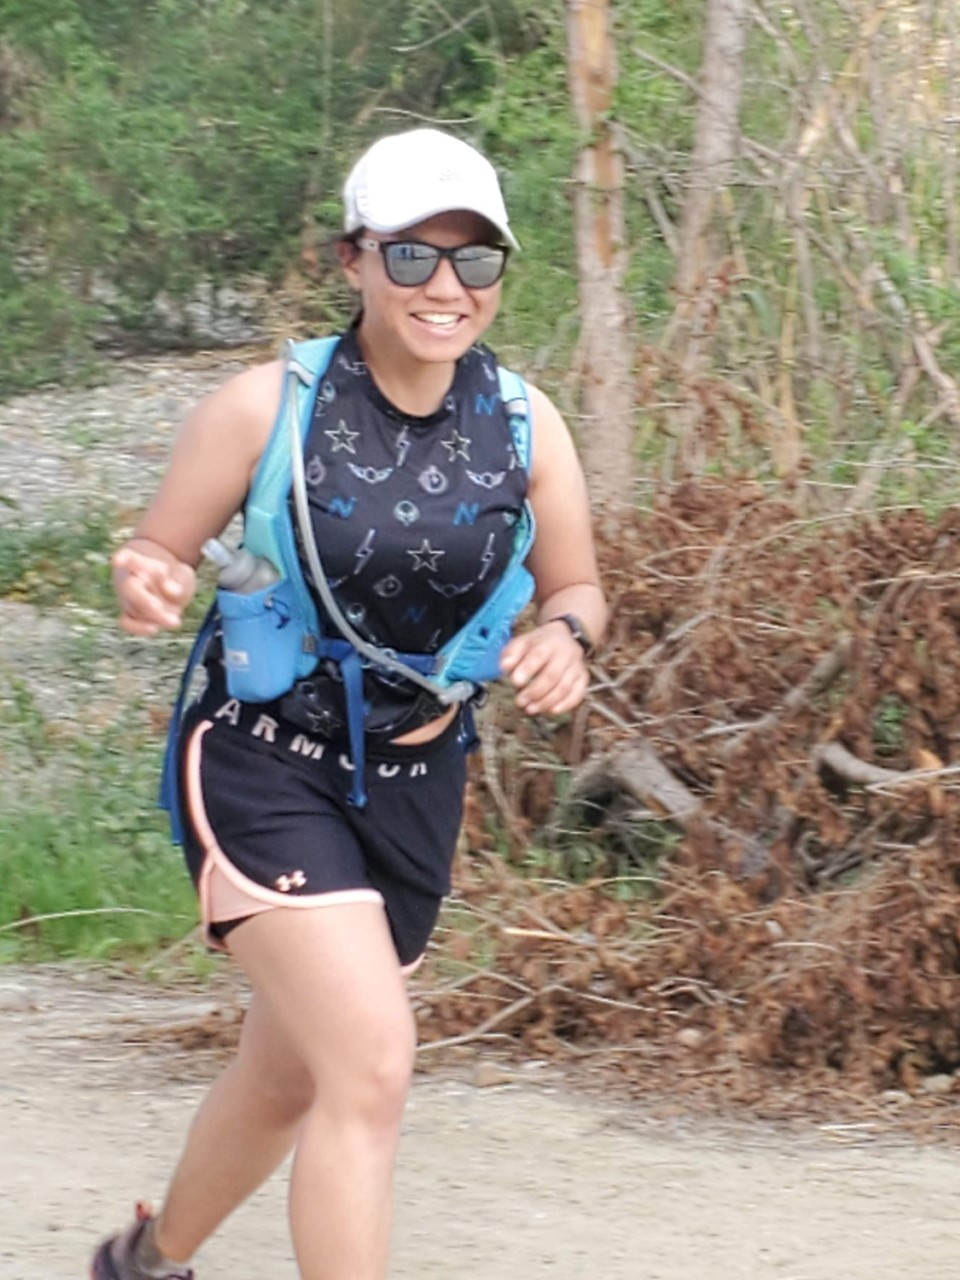 Michelle running on a trail